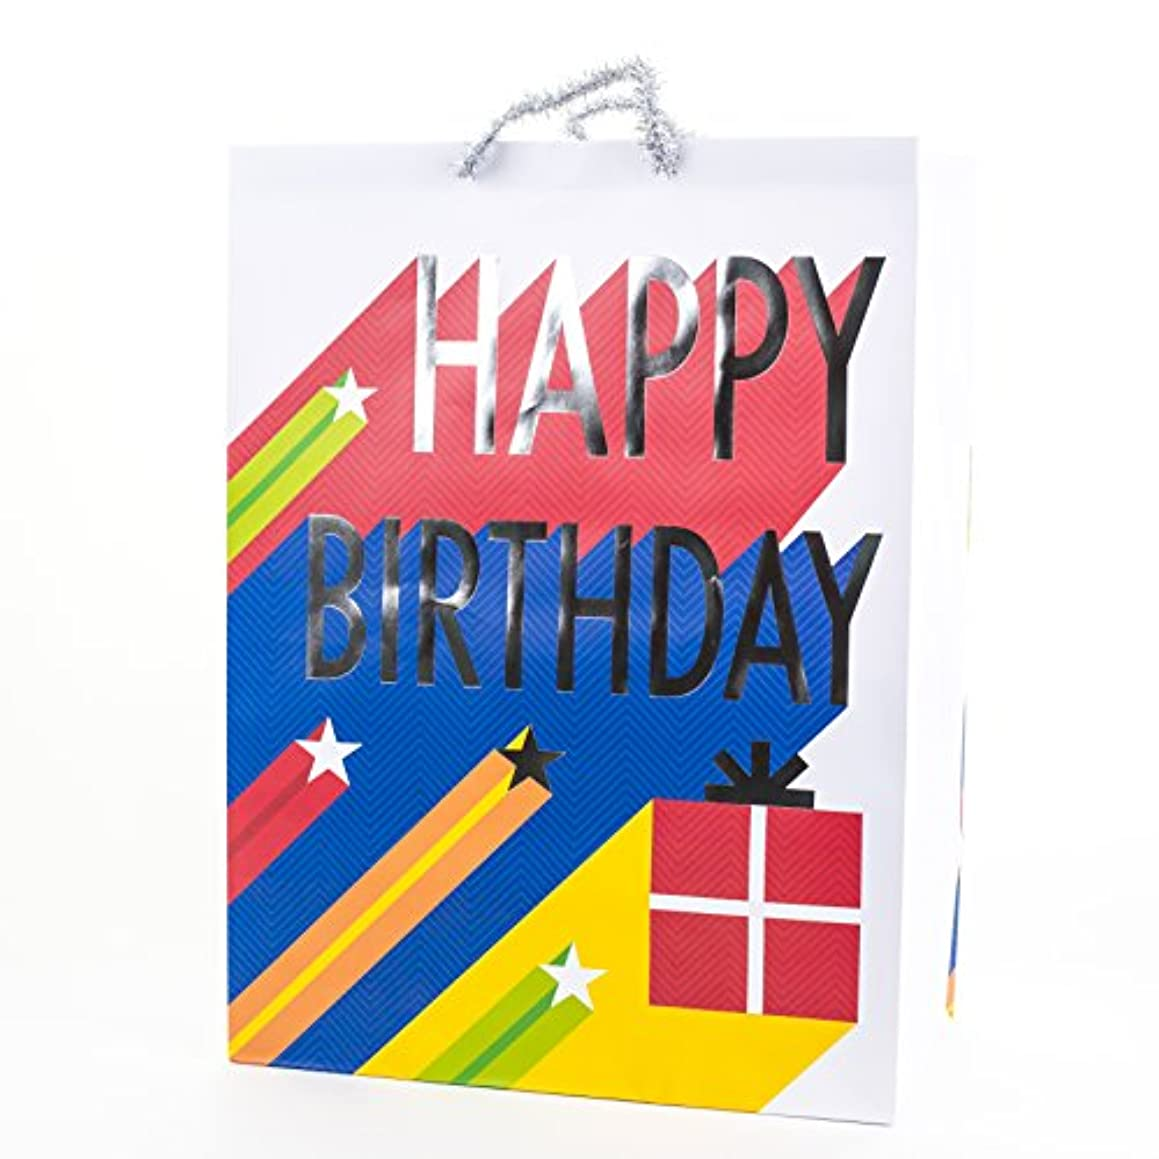 Hallmark Oversized Gift Bag for Birthdays, Parties and More (Happy Birthday Stars)